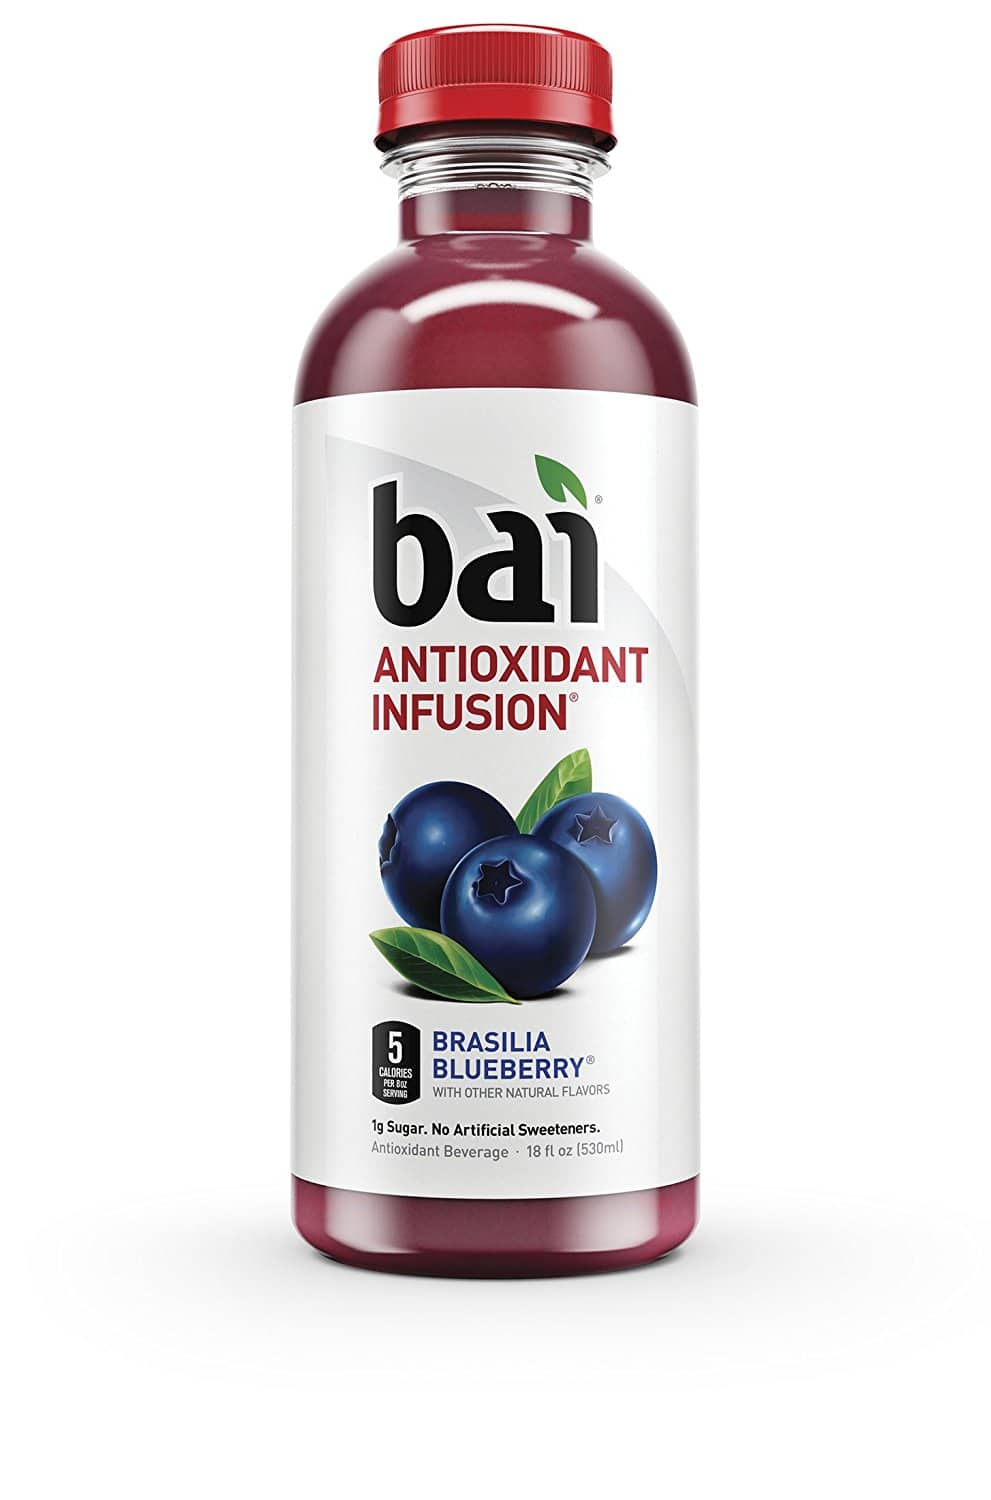 12-Pack of 18oz Bai Antioxidant Infused Beverage (Brasilia Blueberry) $12.58 or Less w/ S&S + Free Shipping ~ Amazon